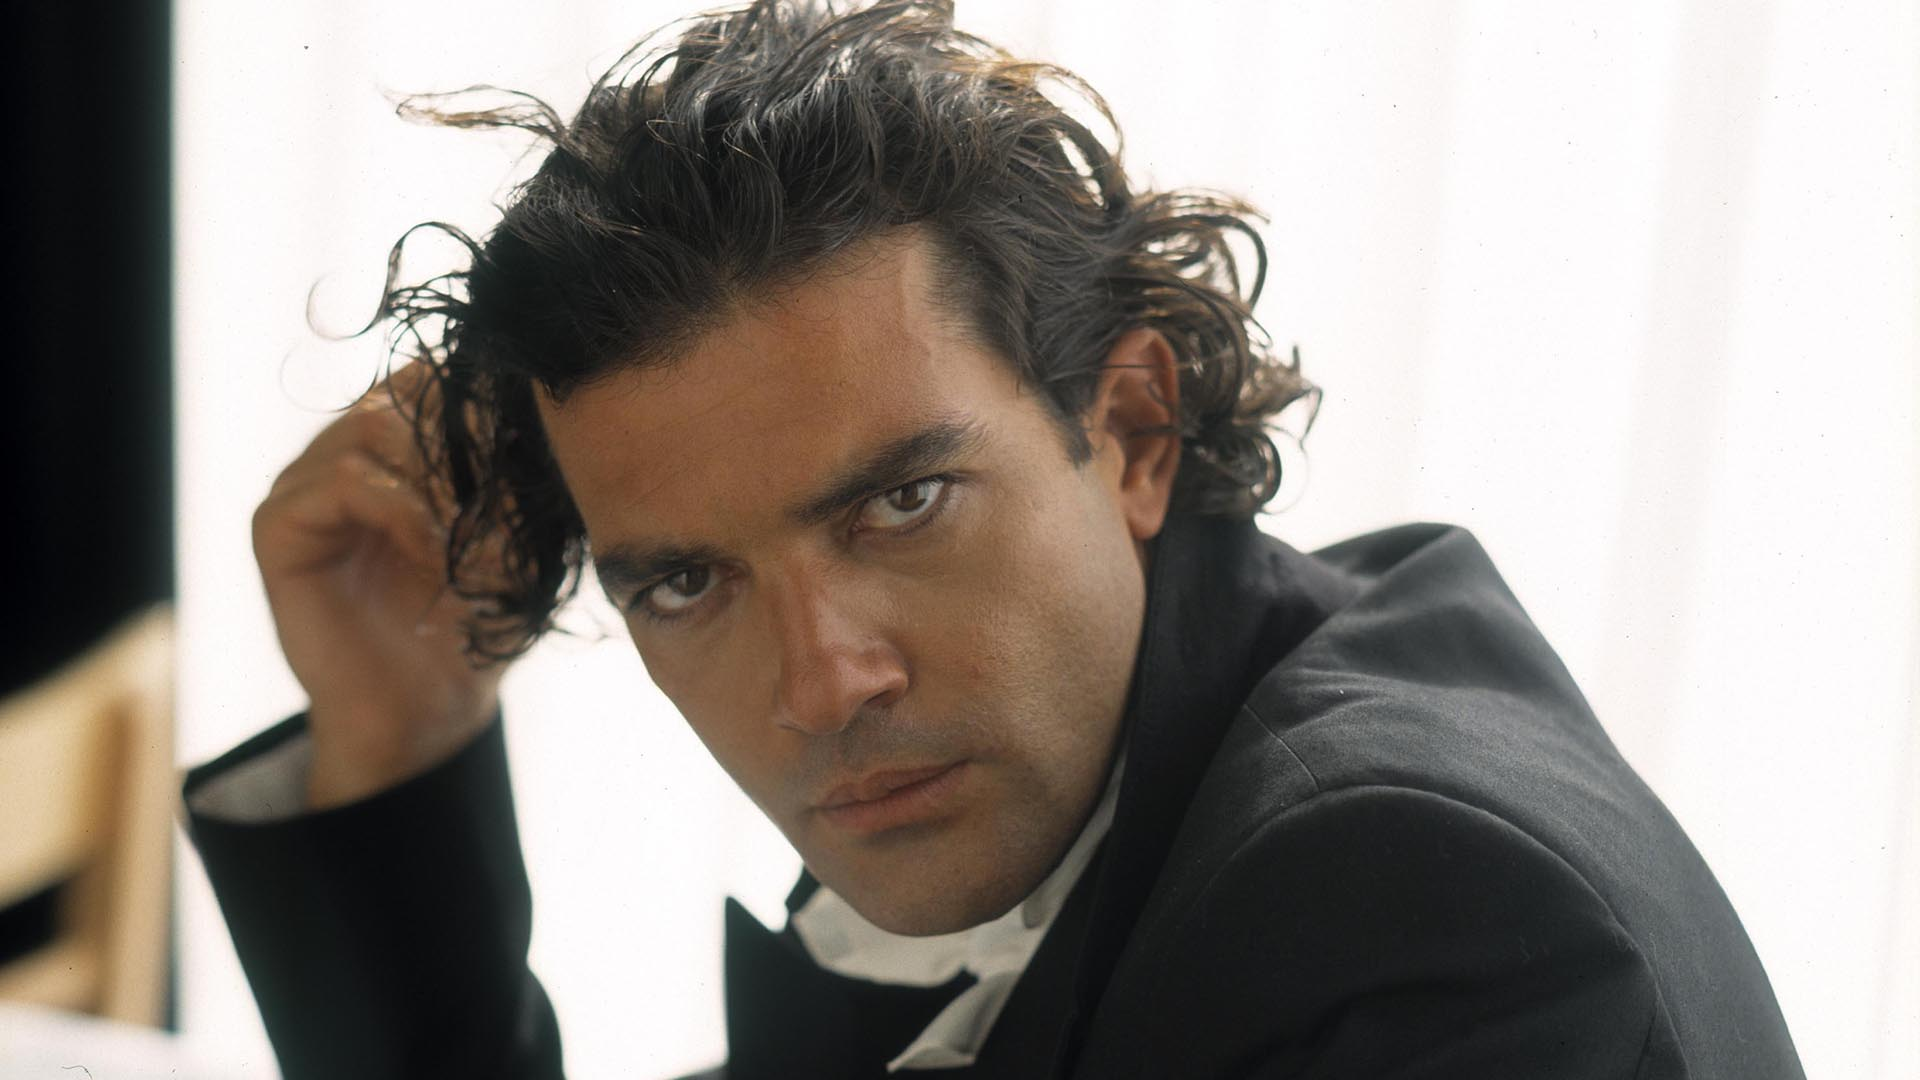 Cars Iphone 7 Wallpaper Antonio Banderas Wallpapers High Quality Download Free